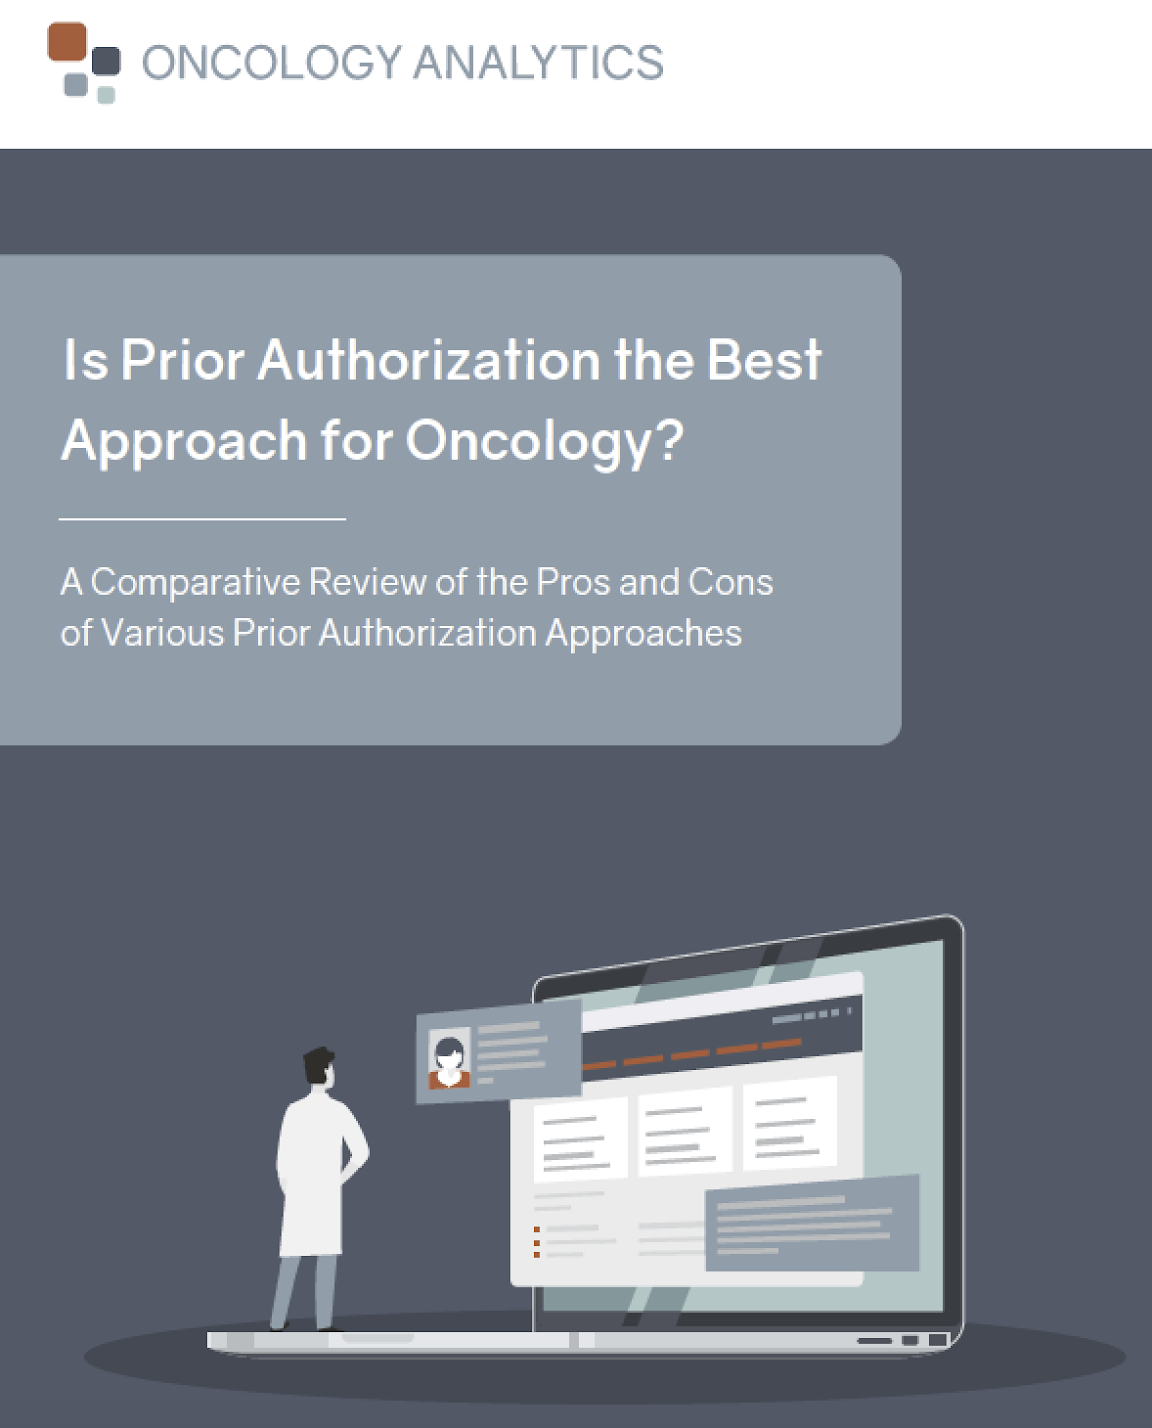 Pros and Cons of Various Prior Authorization Approaches for Oncology